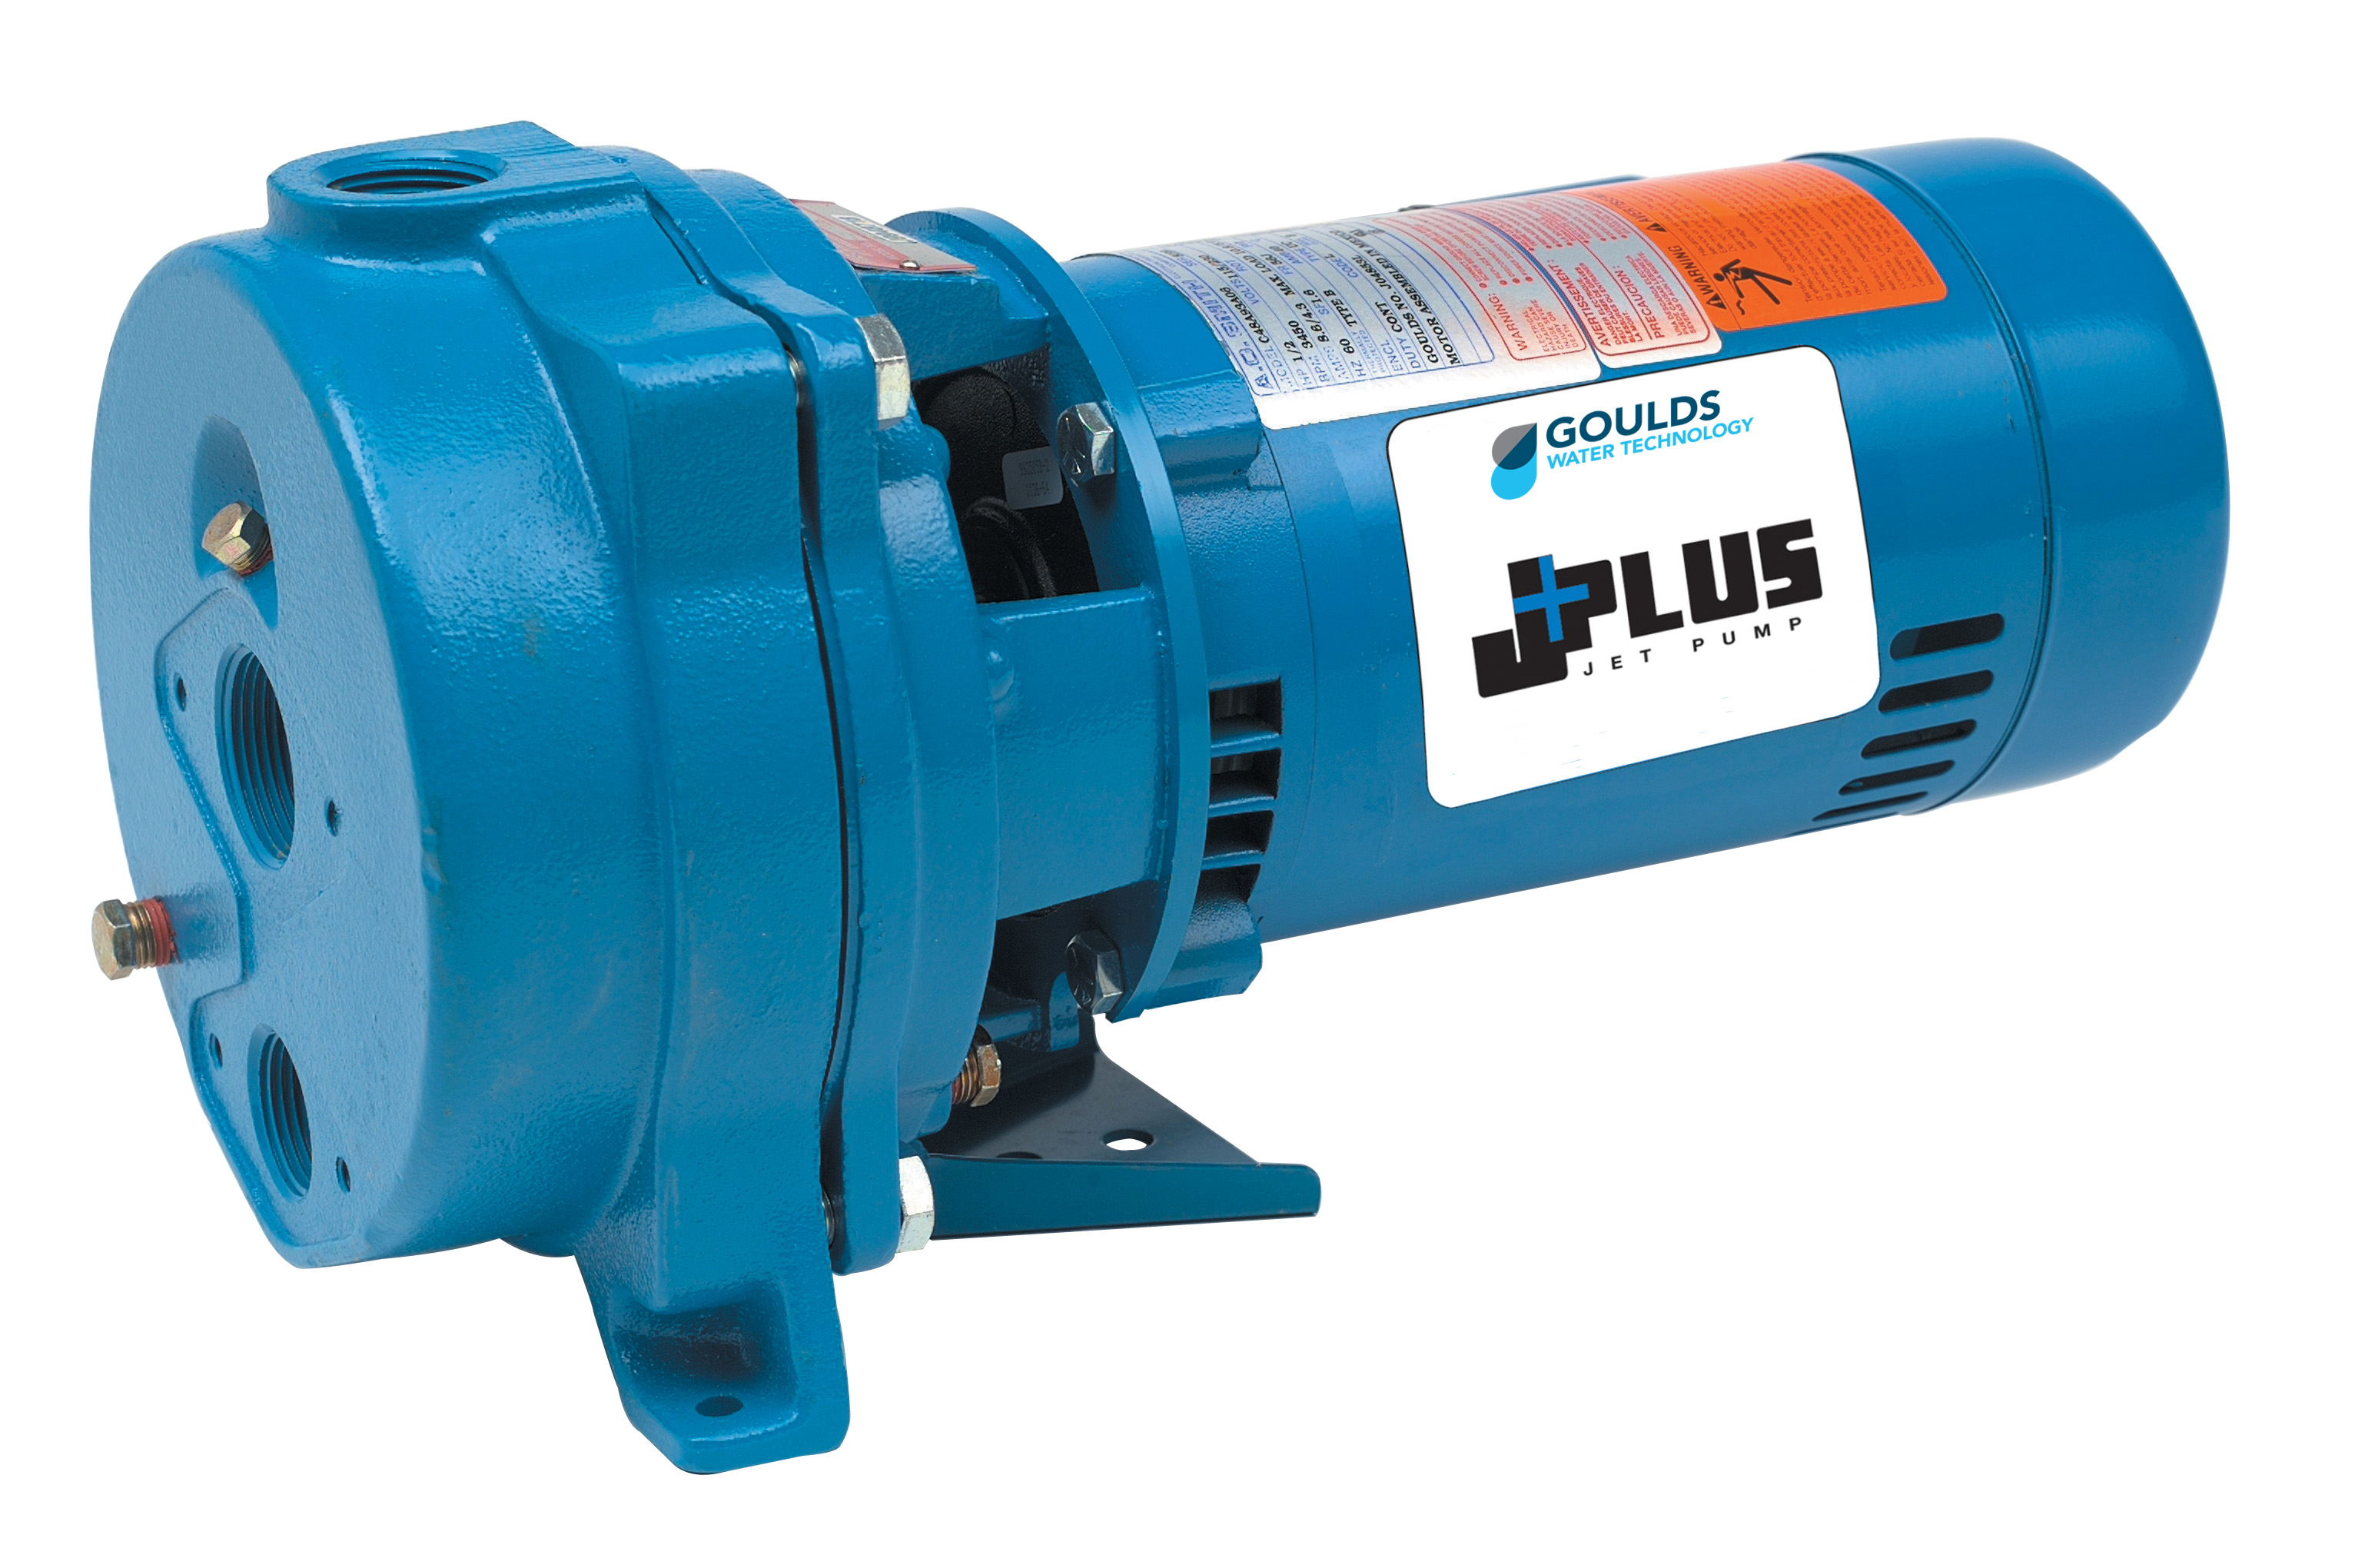 J+ Convertible Jet Pumps